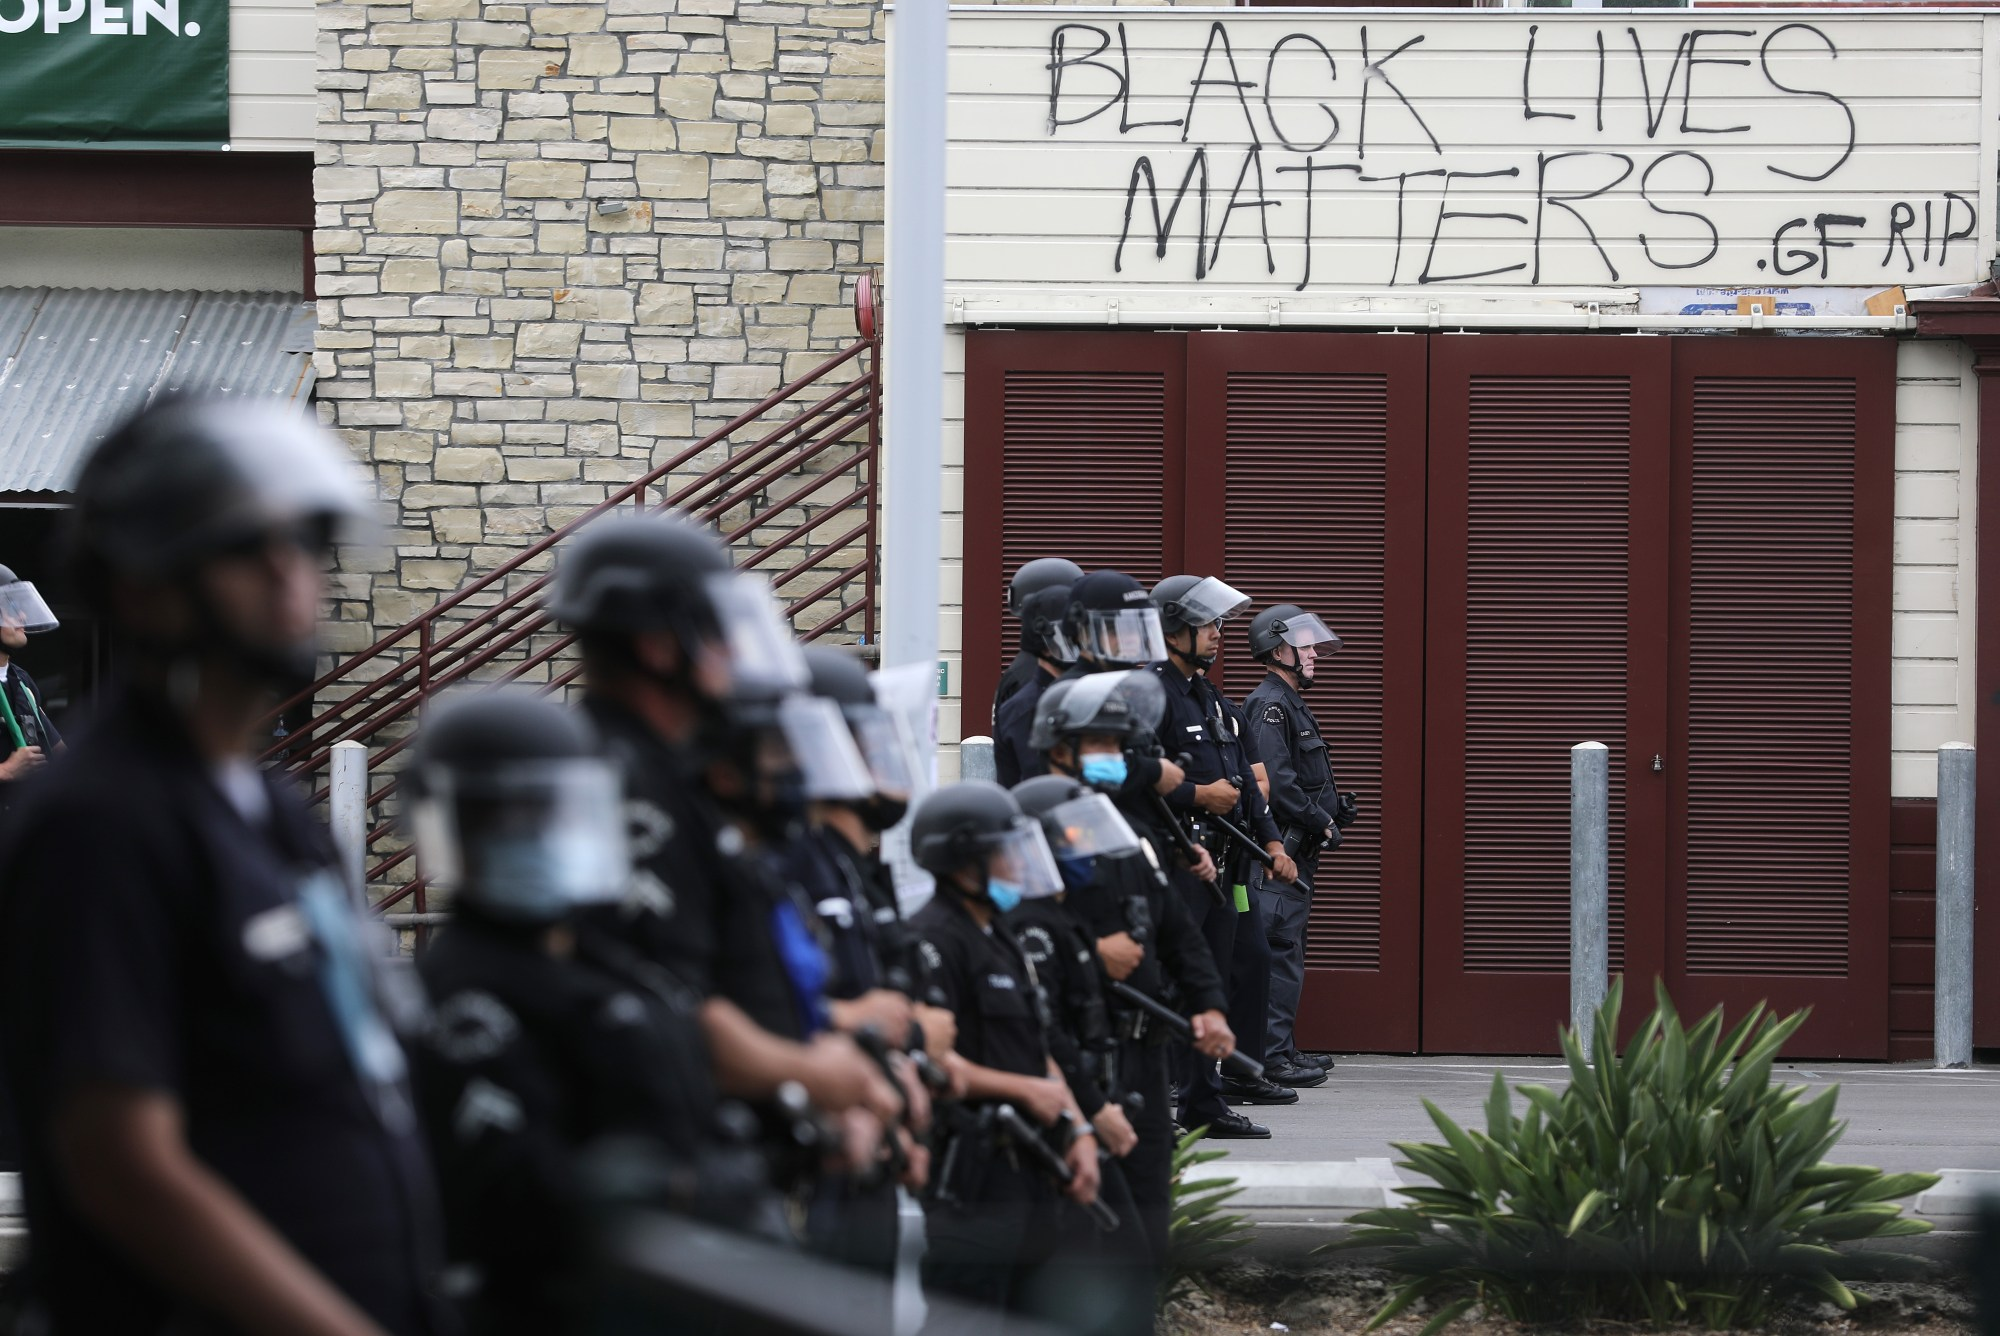 LAPD officers keep watch beneath graffiti reading 'Black Lives Matters' during demonstrations following the death of George Floyd on May 30, 2020. (Mario Tama/Getty Images)